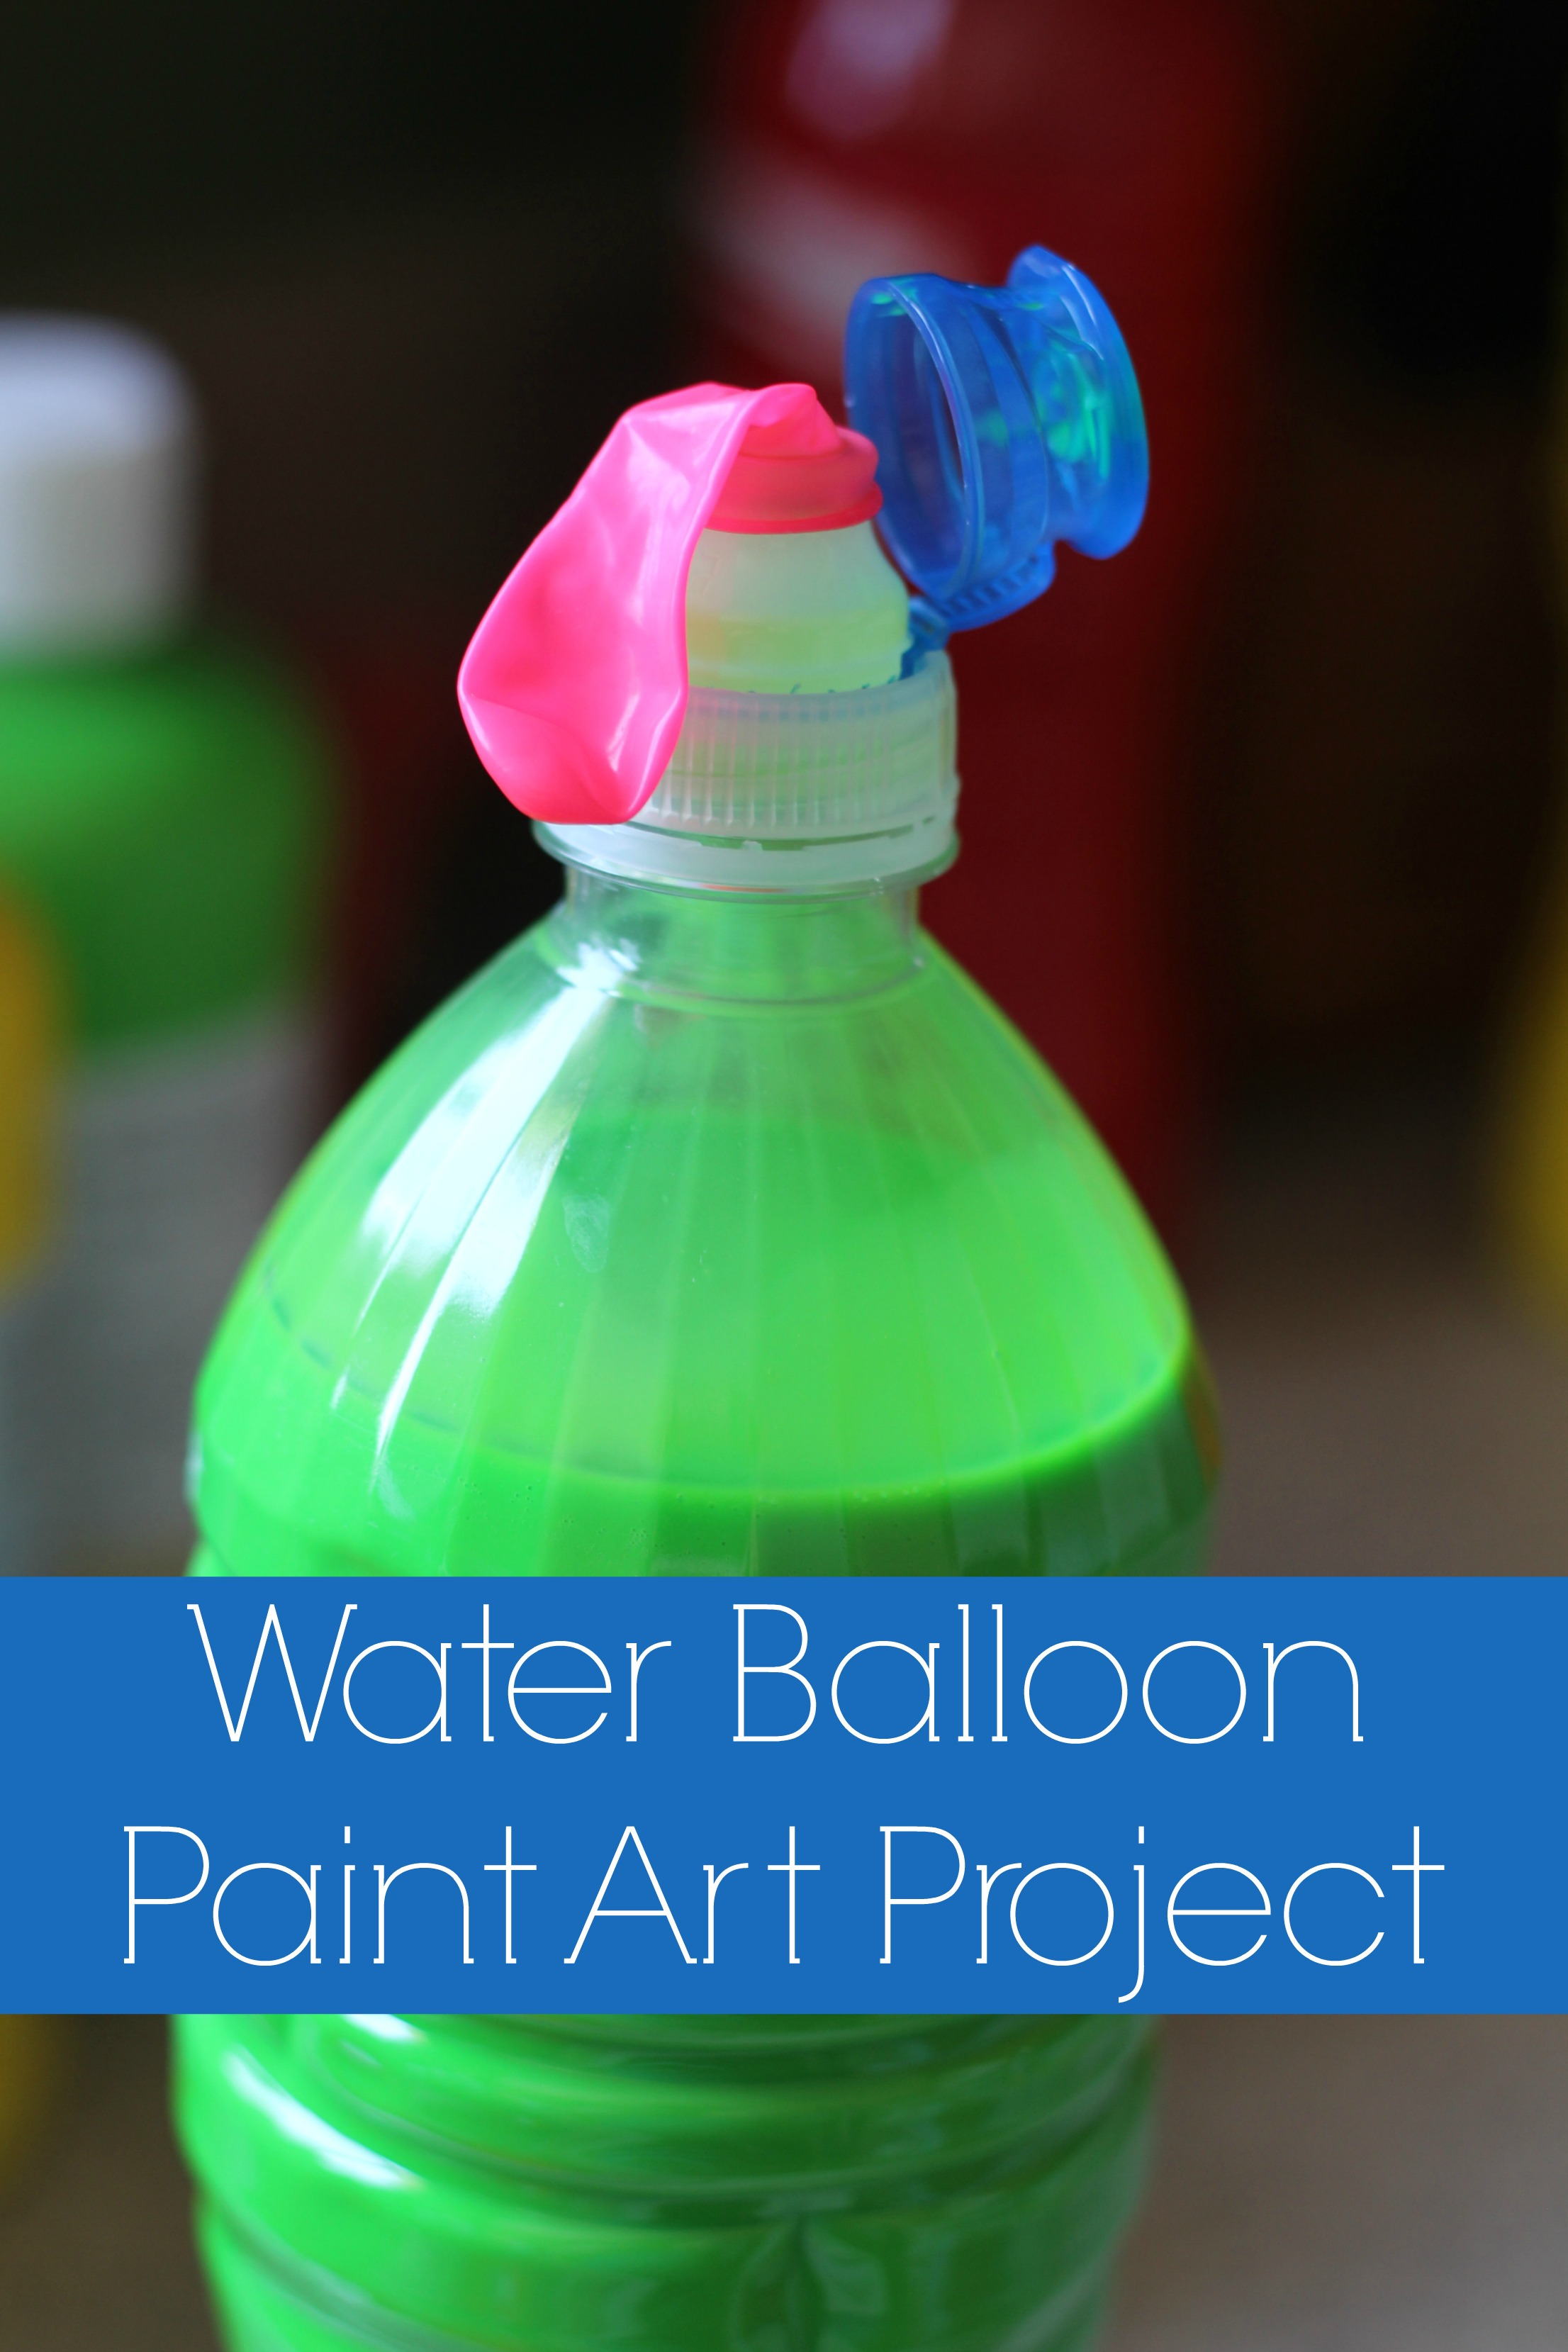 Water Balloon Paint Art Project